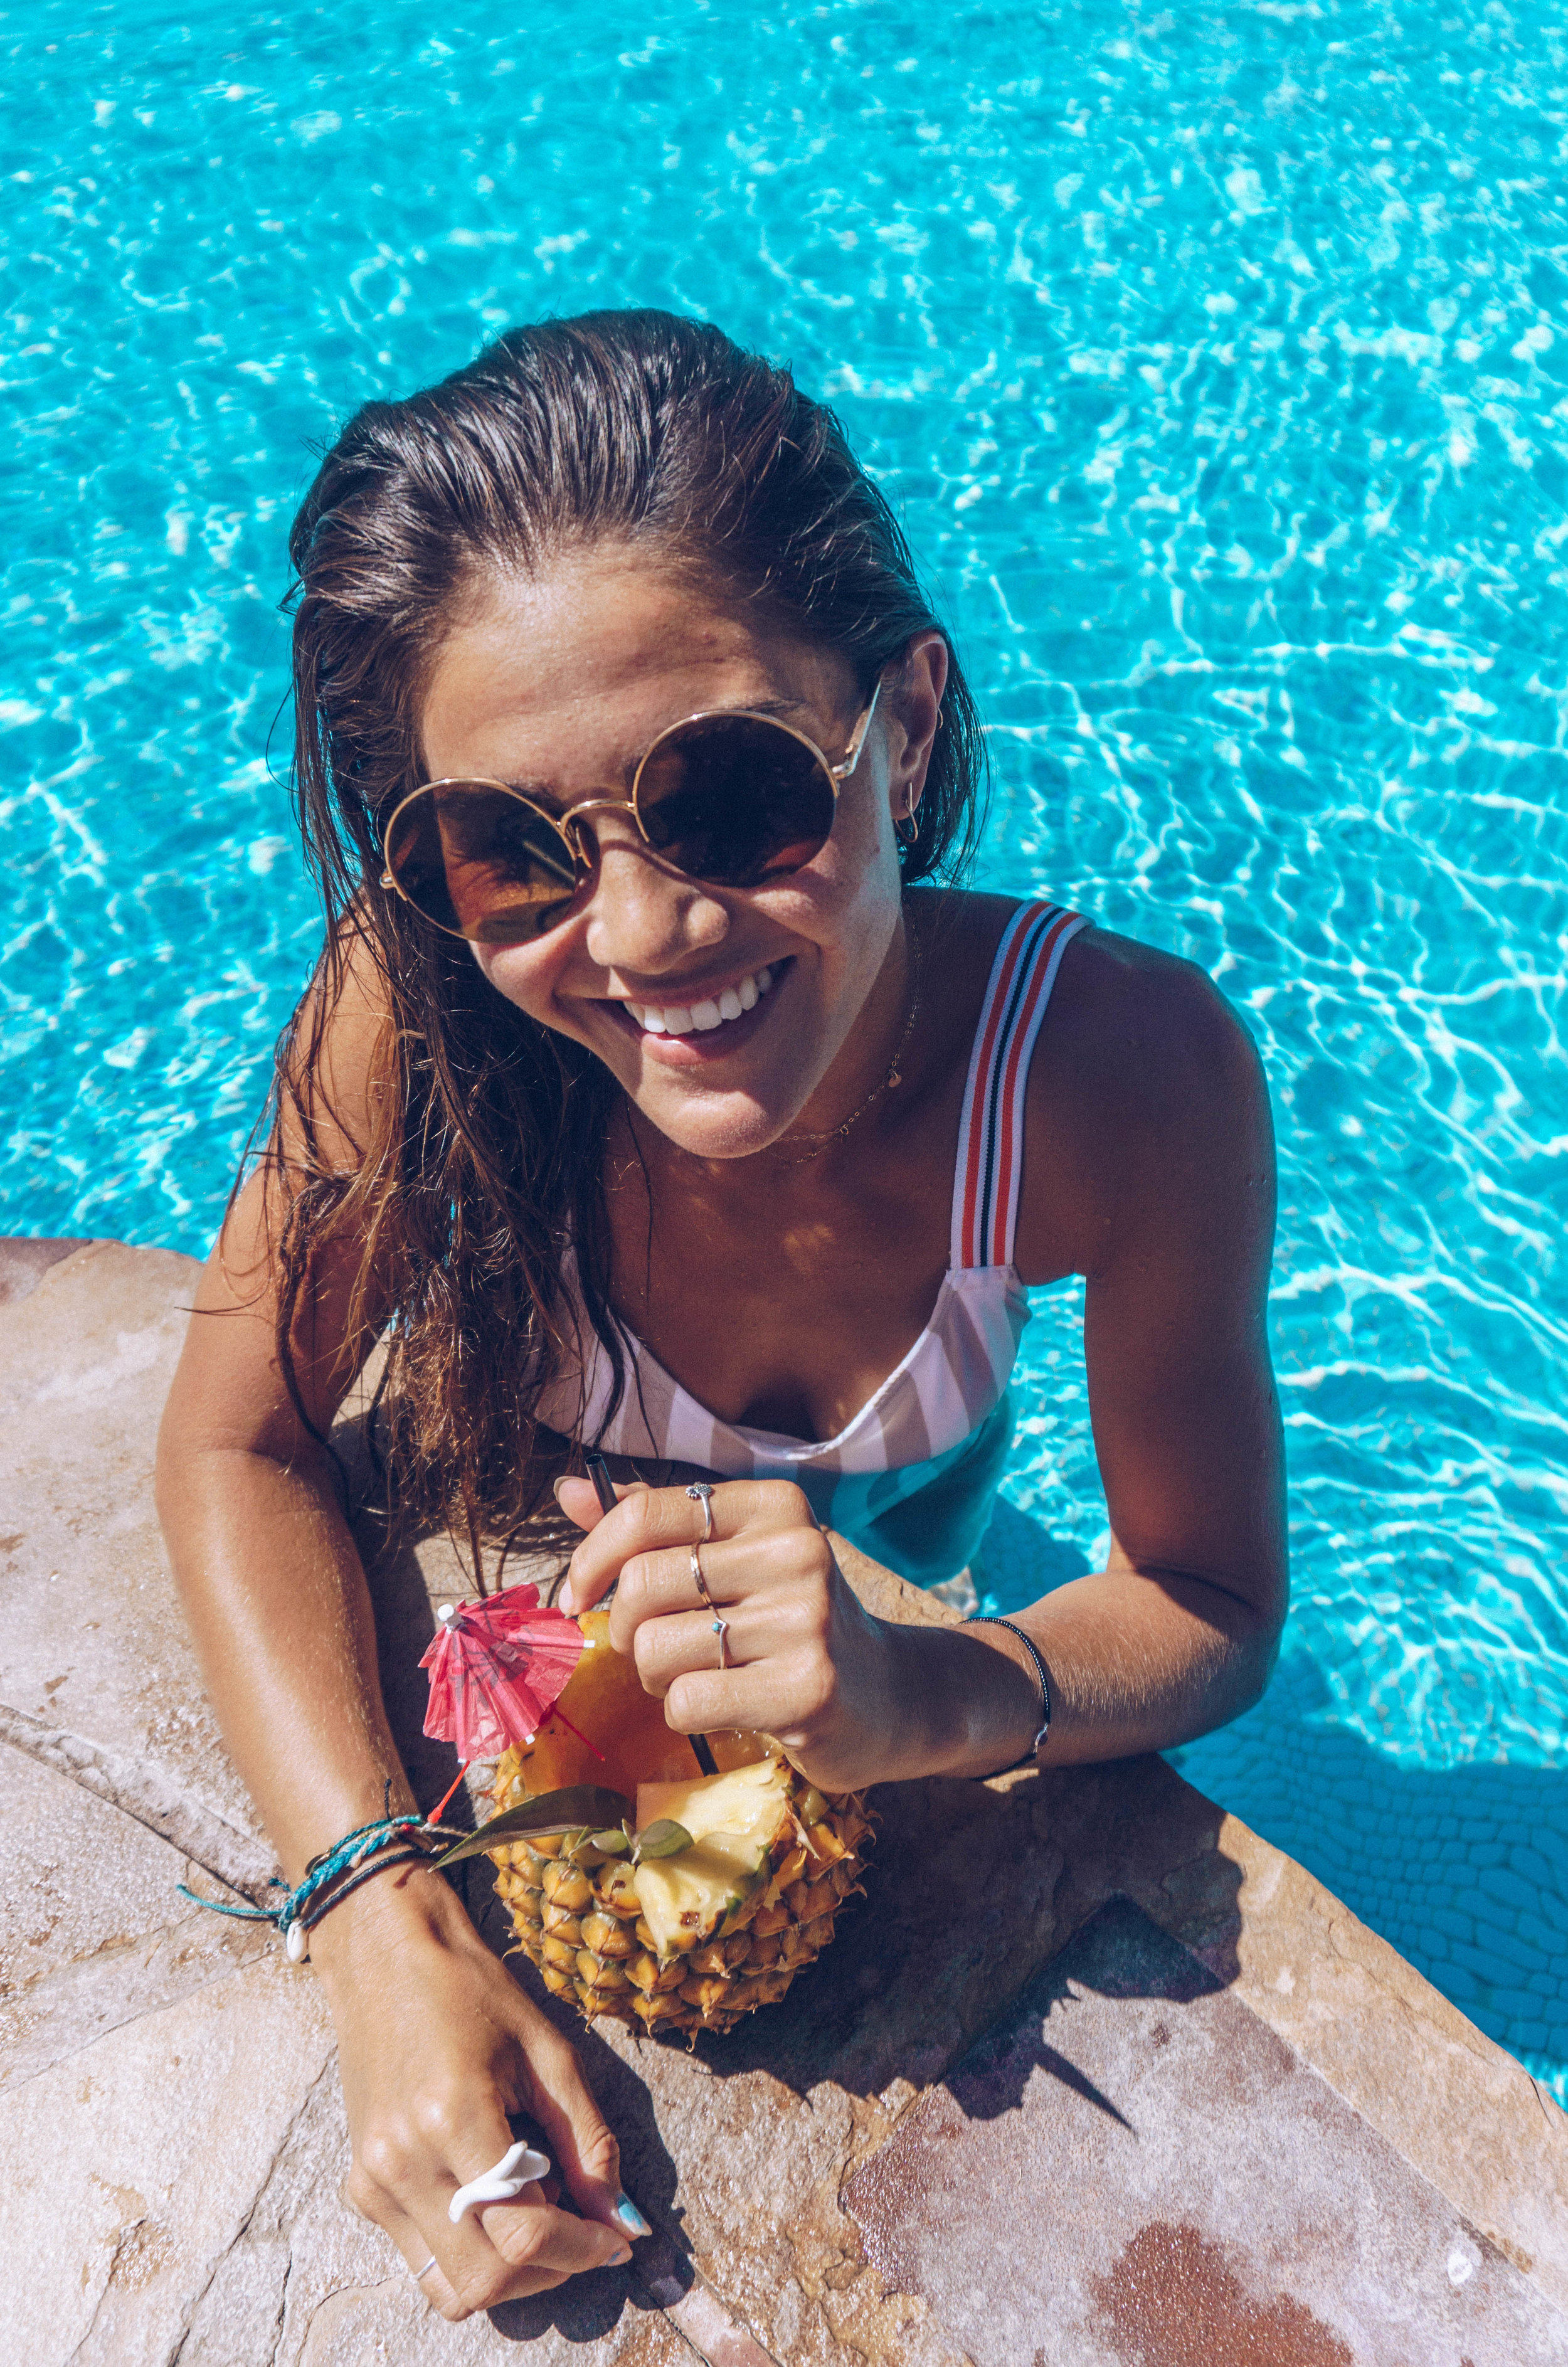 Poolside mocktails just make you feel like you are on vacation.